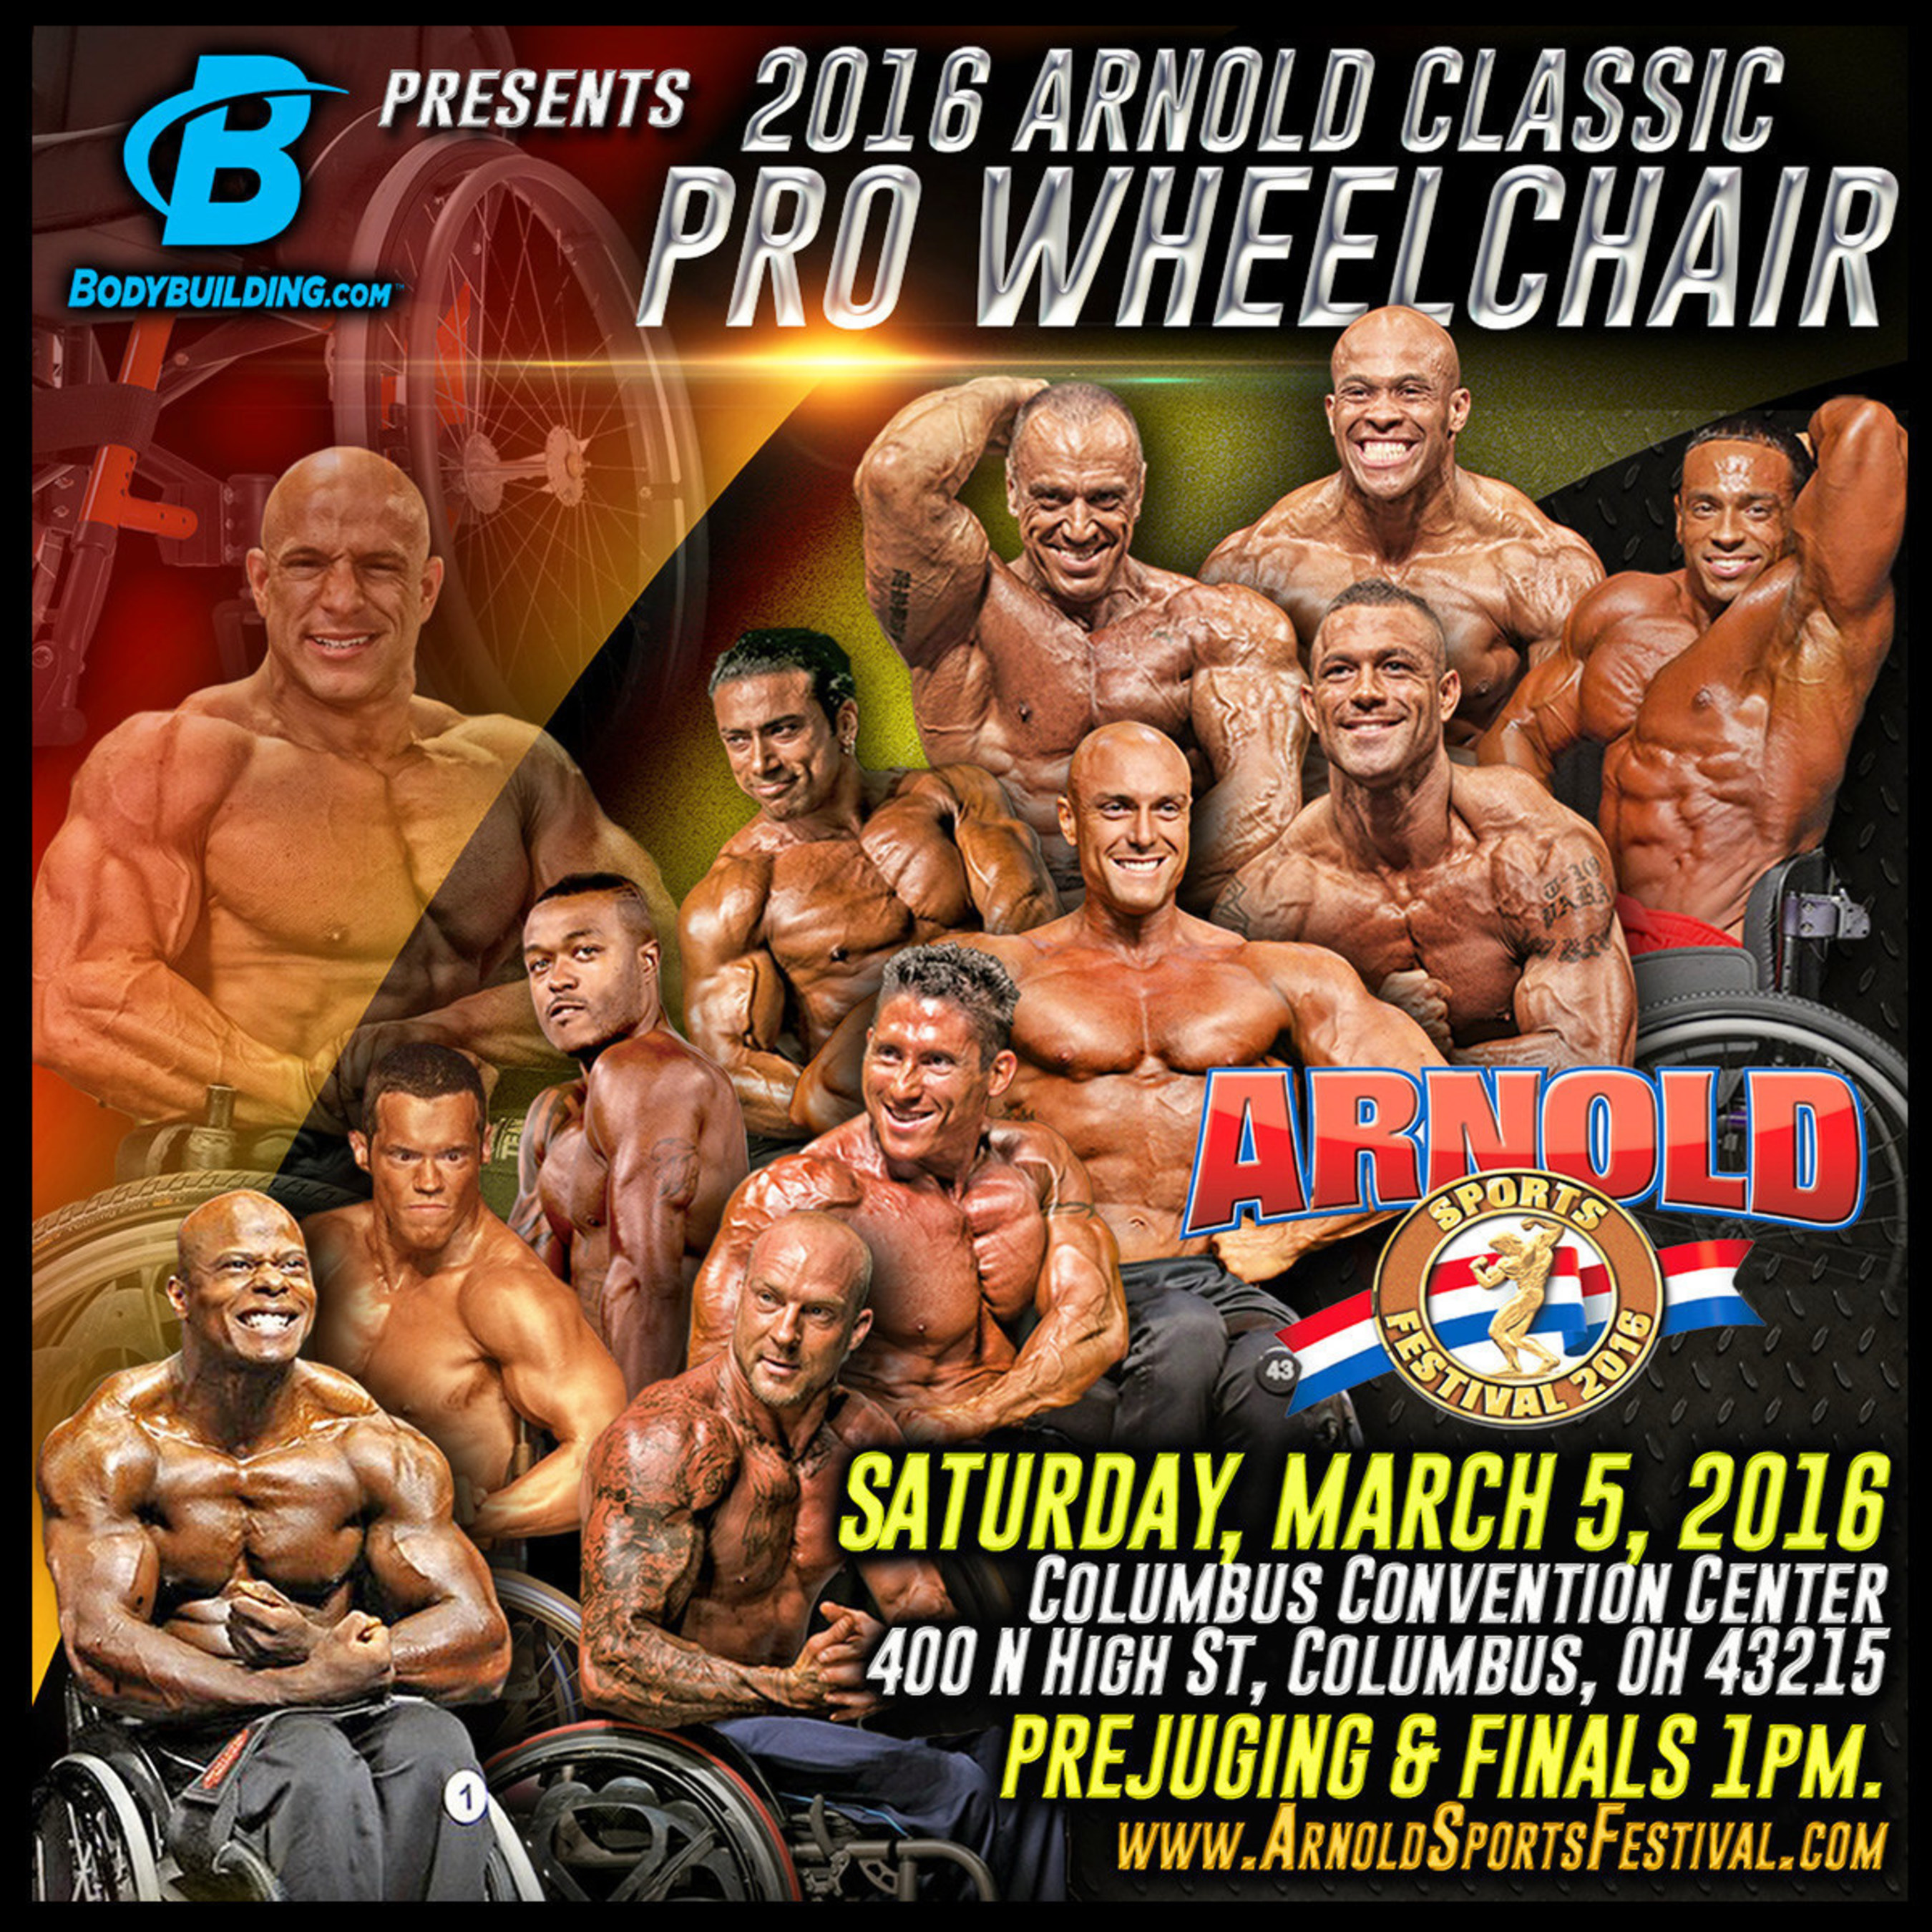 Bodybuilding.com is proud to present the World's FIRST 2016 Arnold Classic Pro Wheelchair event! Saturday, March 5th, 2016 - Columbus, Ohio - USA - 1:00 p.m. to 2:00 p.m. CST | www.ArnoldClassicProWheelchair.com | www.ArnoldSportsFestival.com